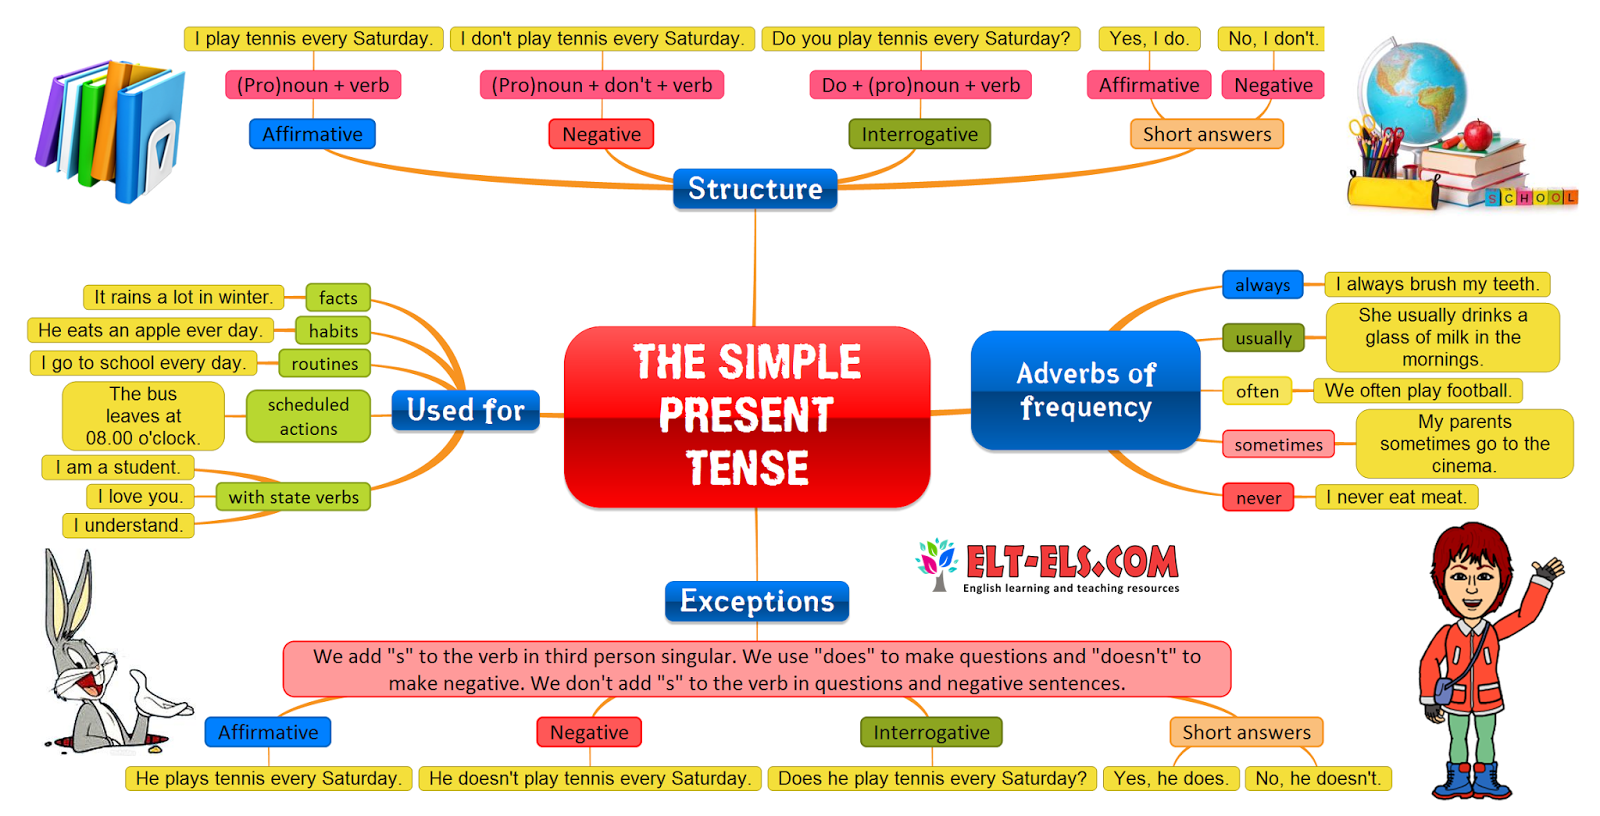 The Simple Present Tense